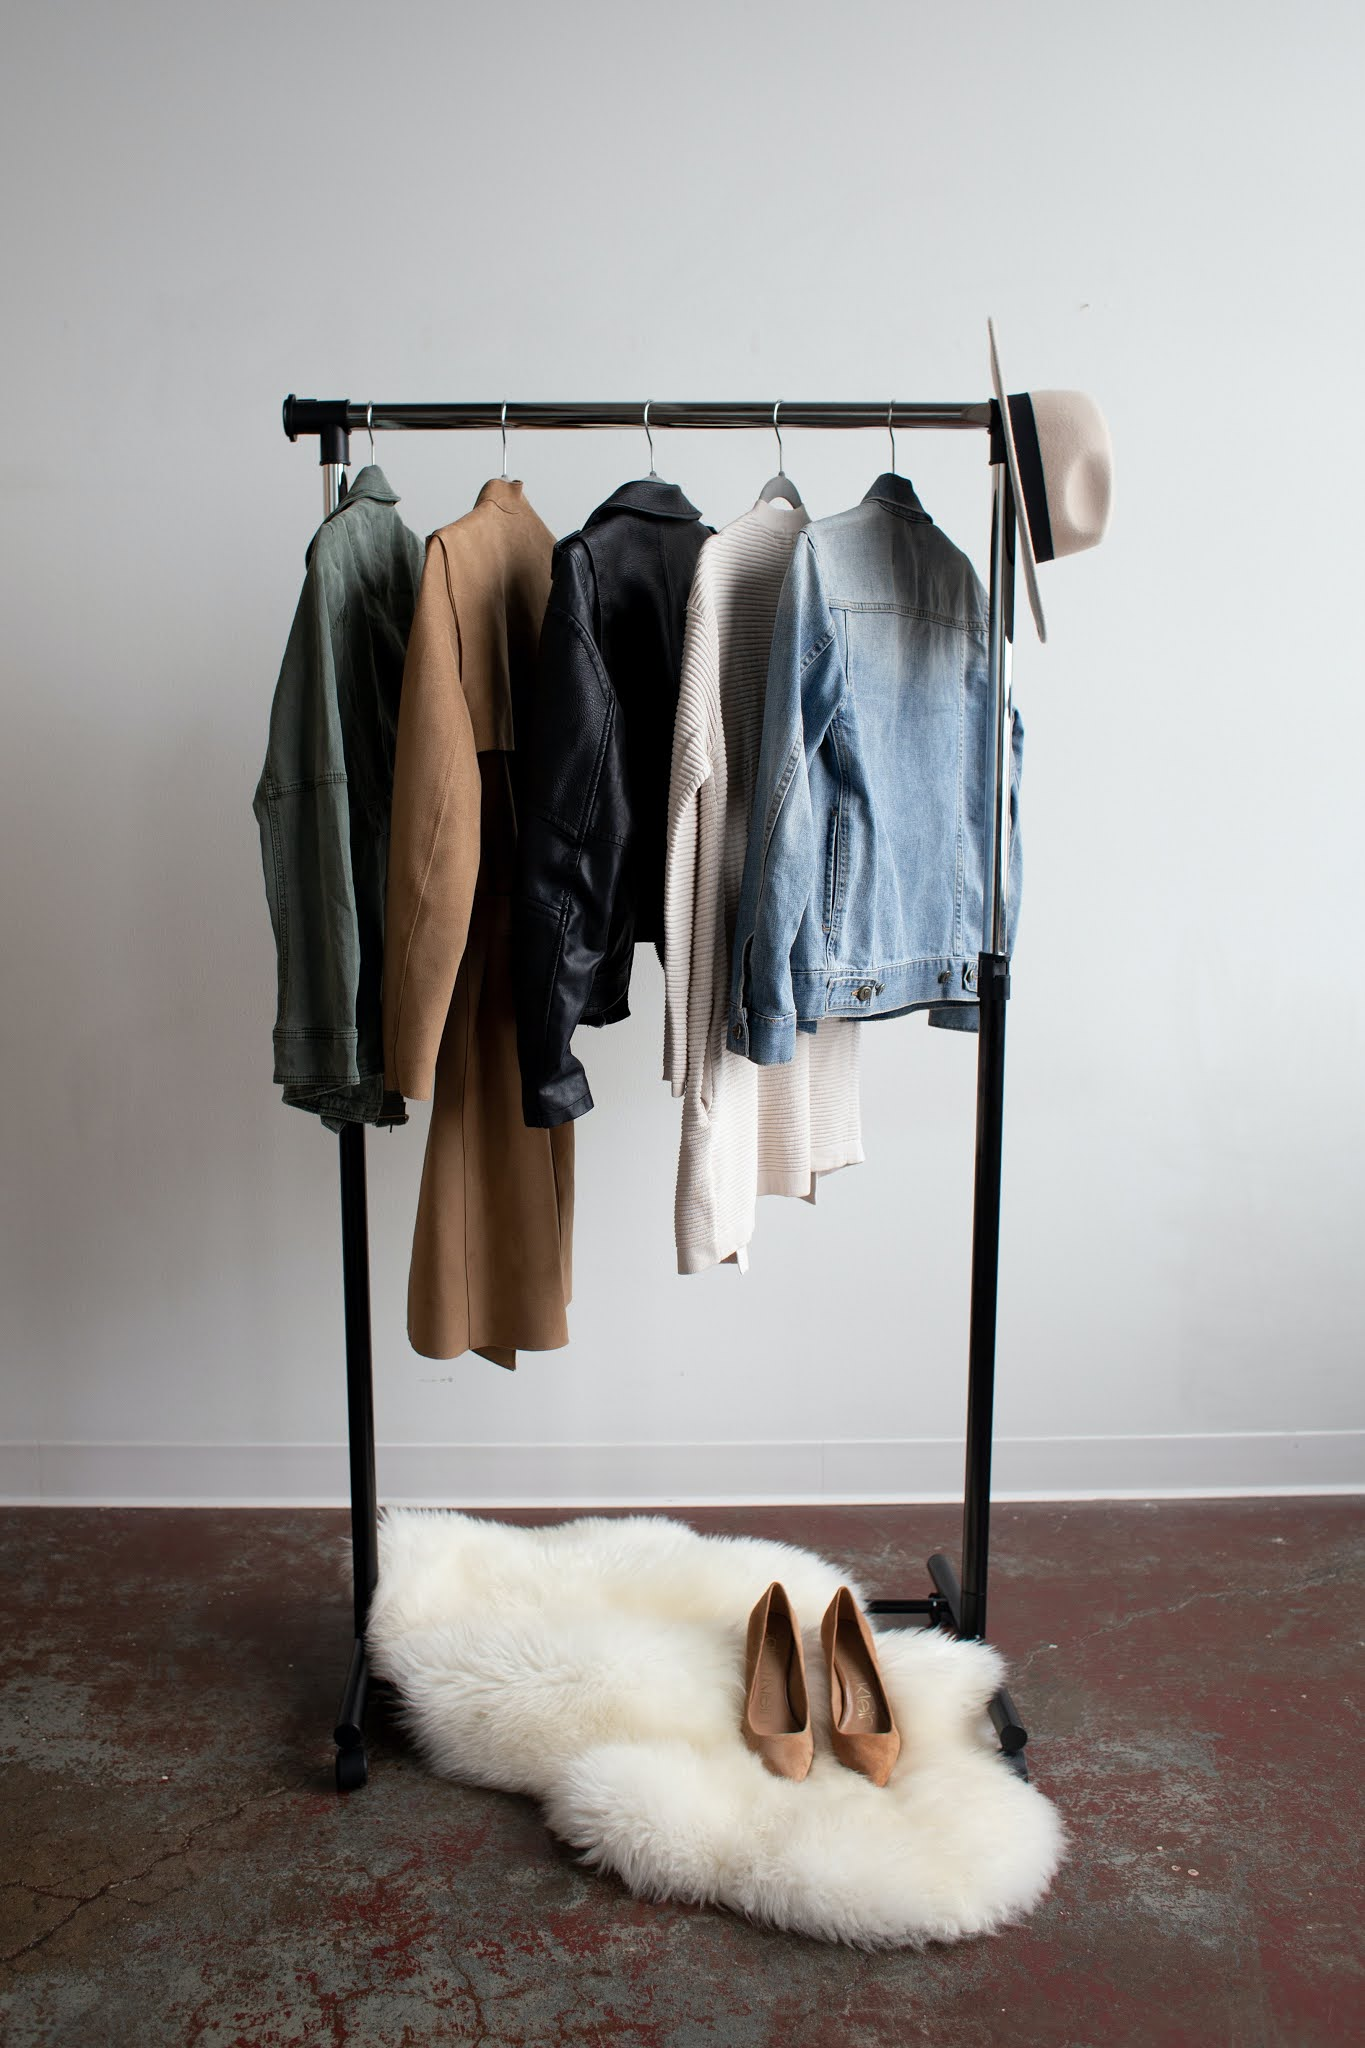 Closet Of Clothes-Now You Can Do A Capsule Wardrobe[Freebie]